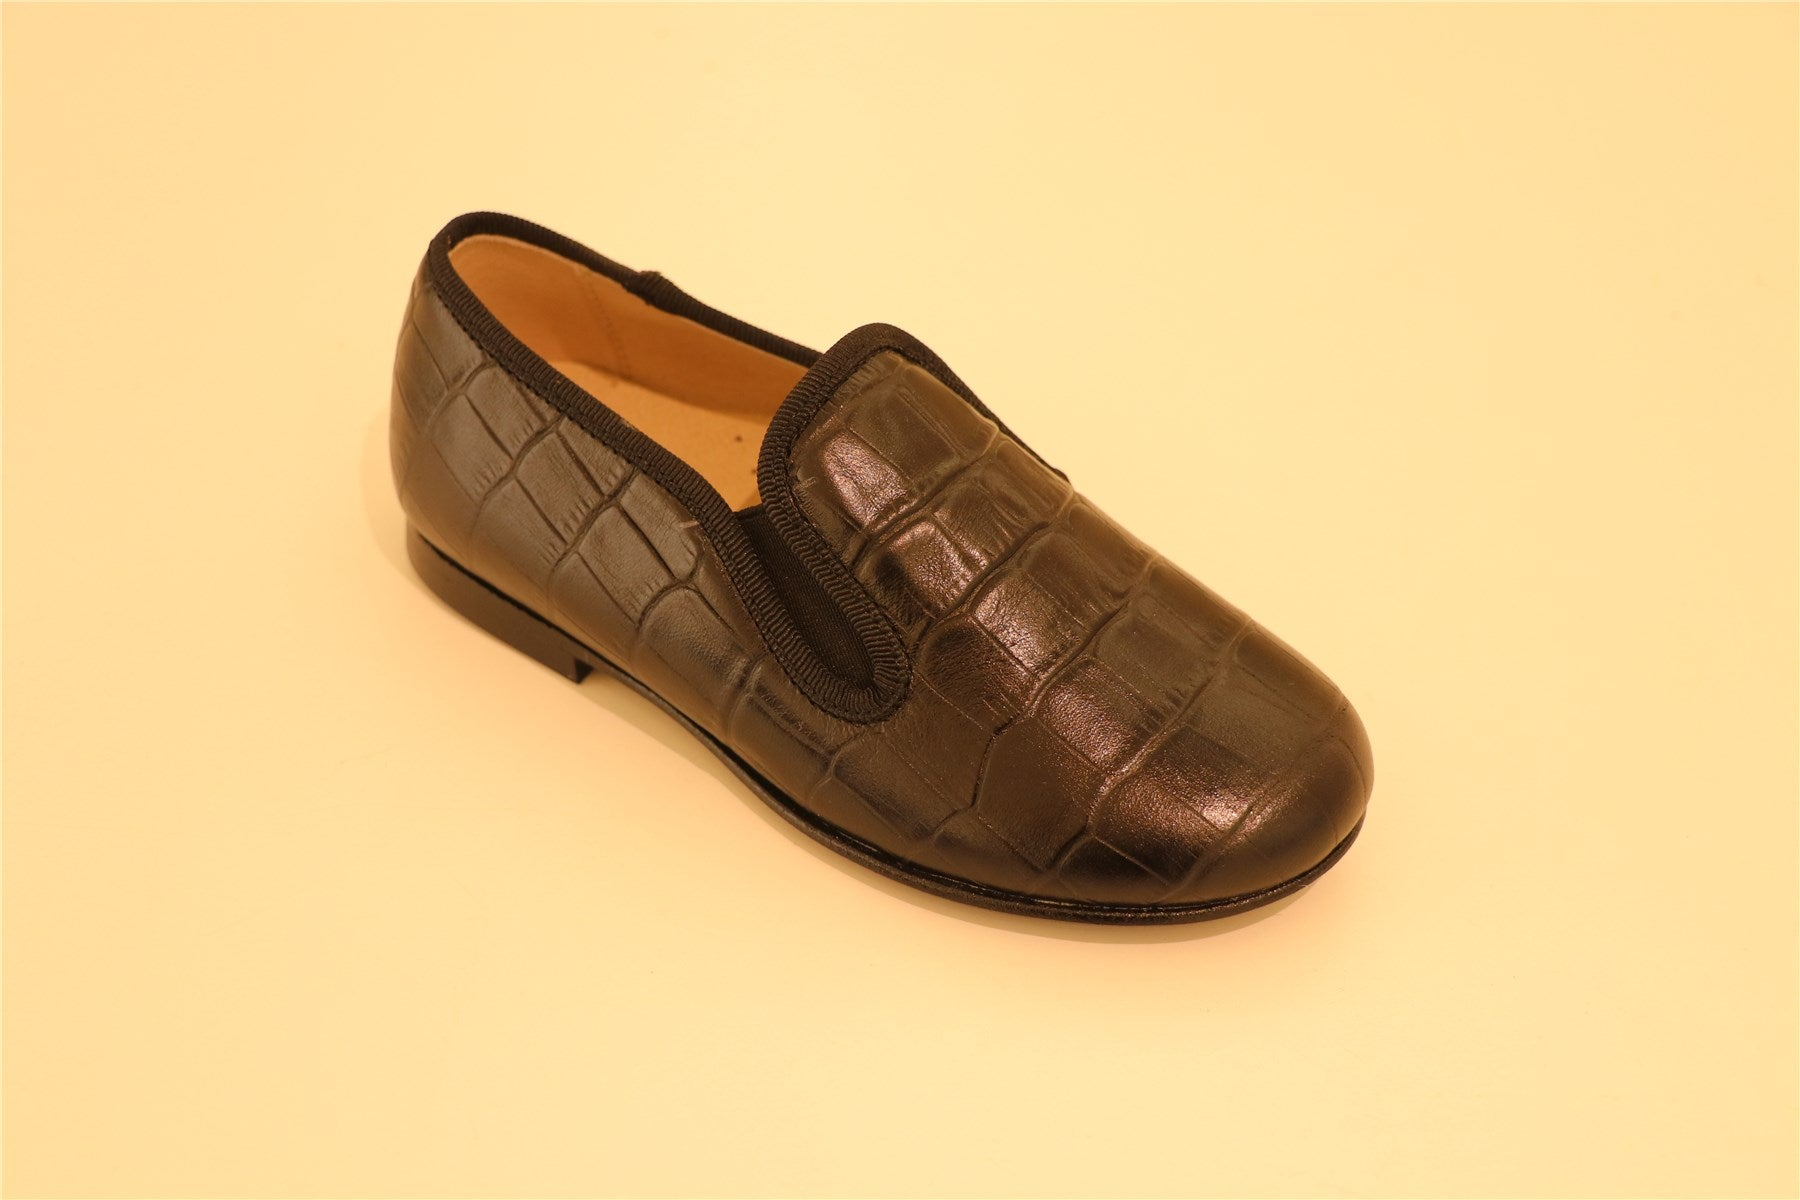 Black Boys Crocodile-Leather Loafer